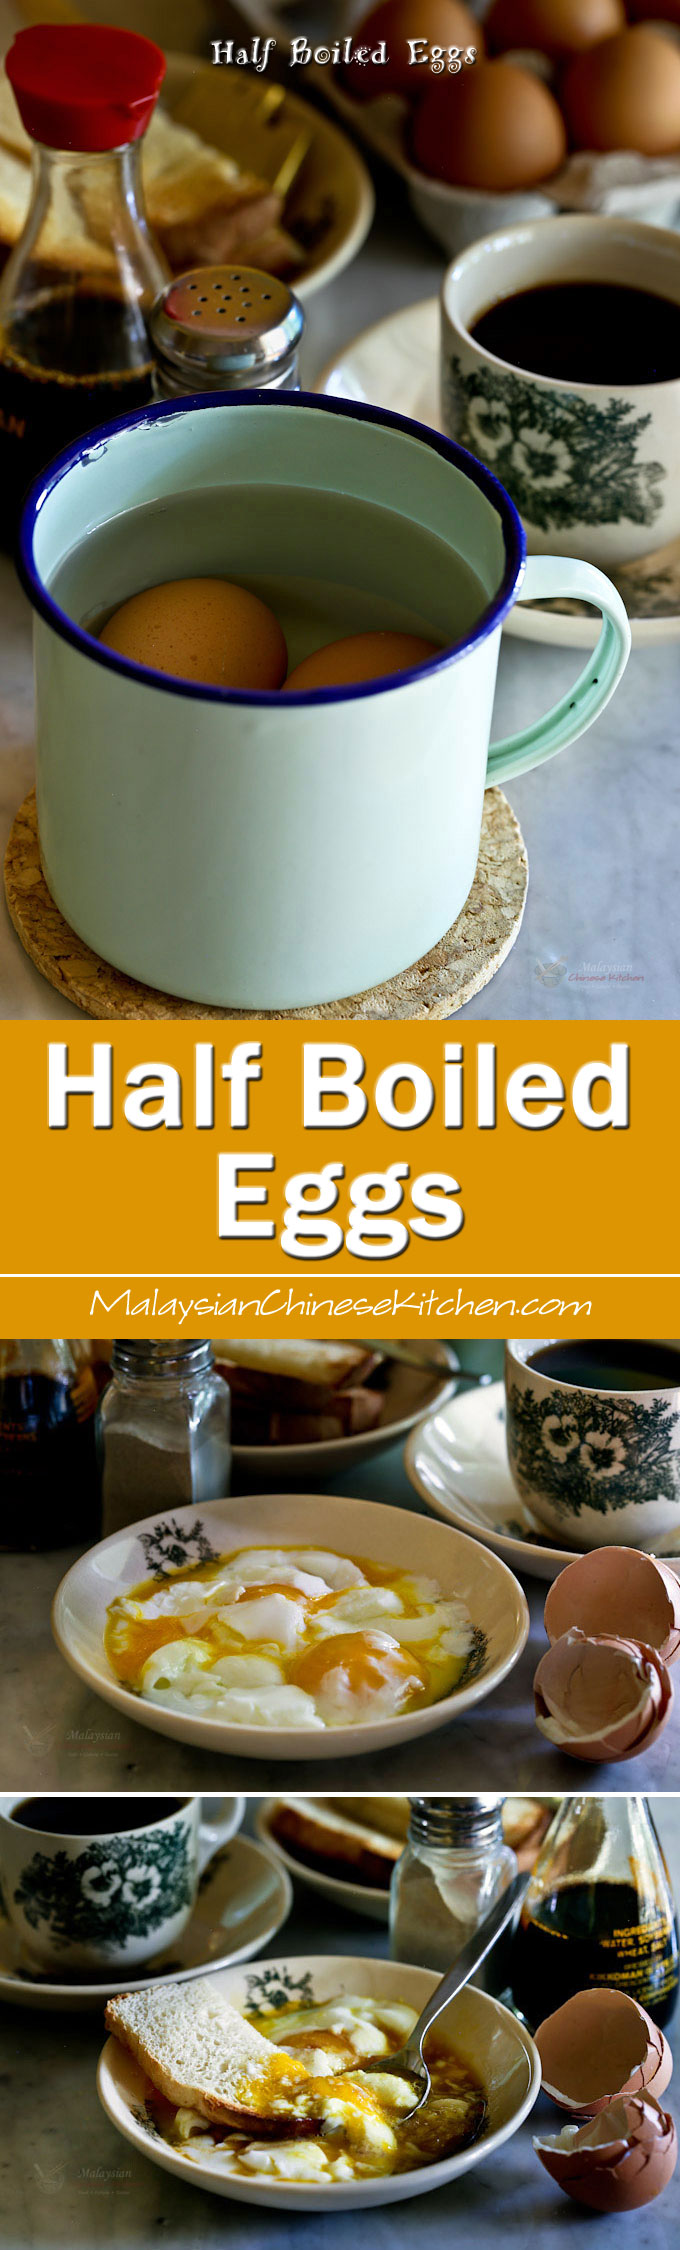 Half Boiled Eggs and toast are a favorite Malaysian breakfast. Learn how to cook them to a soft, creamy, and delicious perfection in a hot water bath.   MalaysianChineseKitchen.com